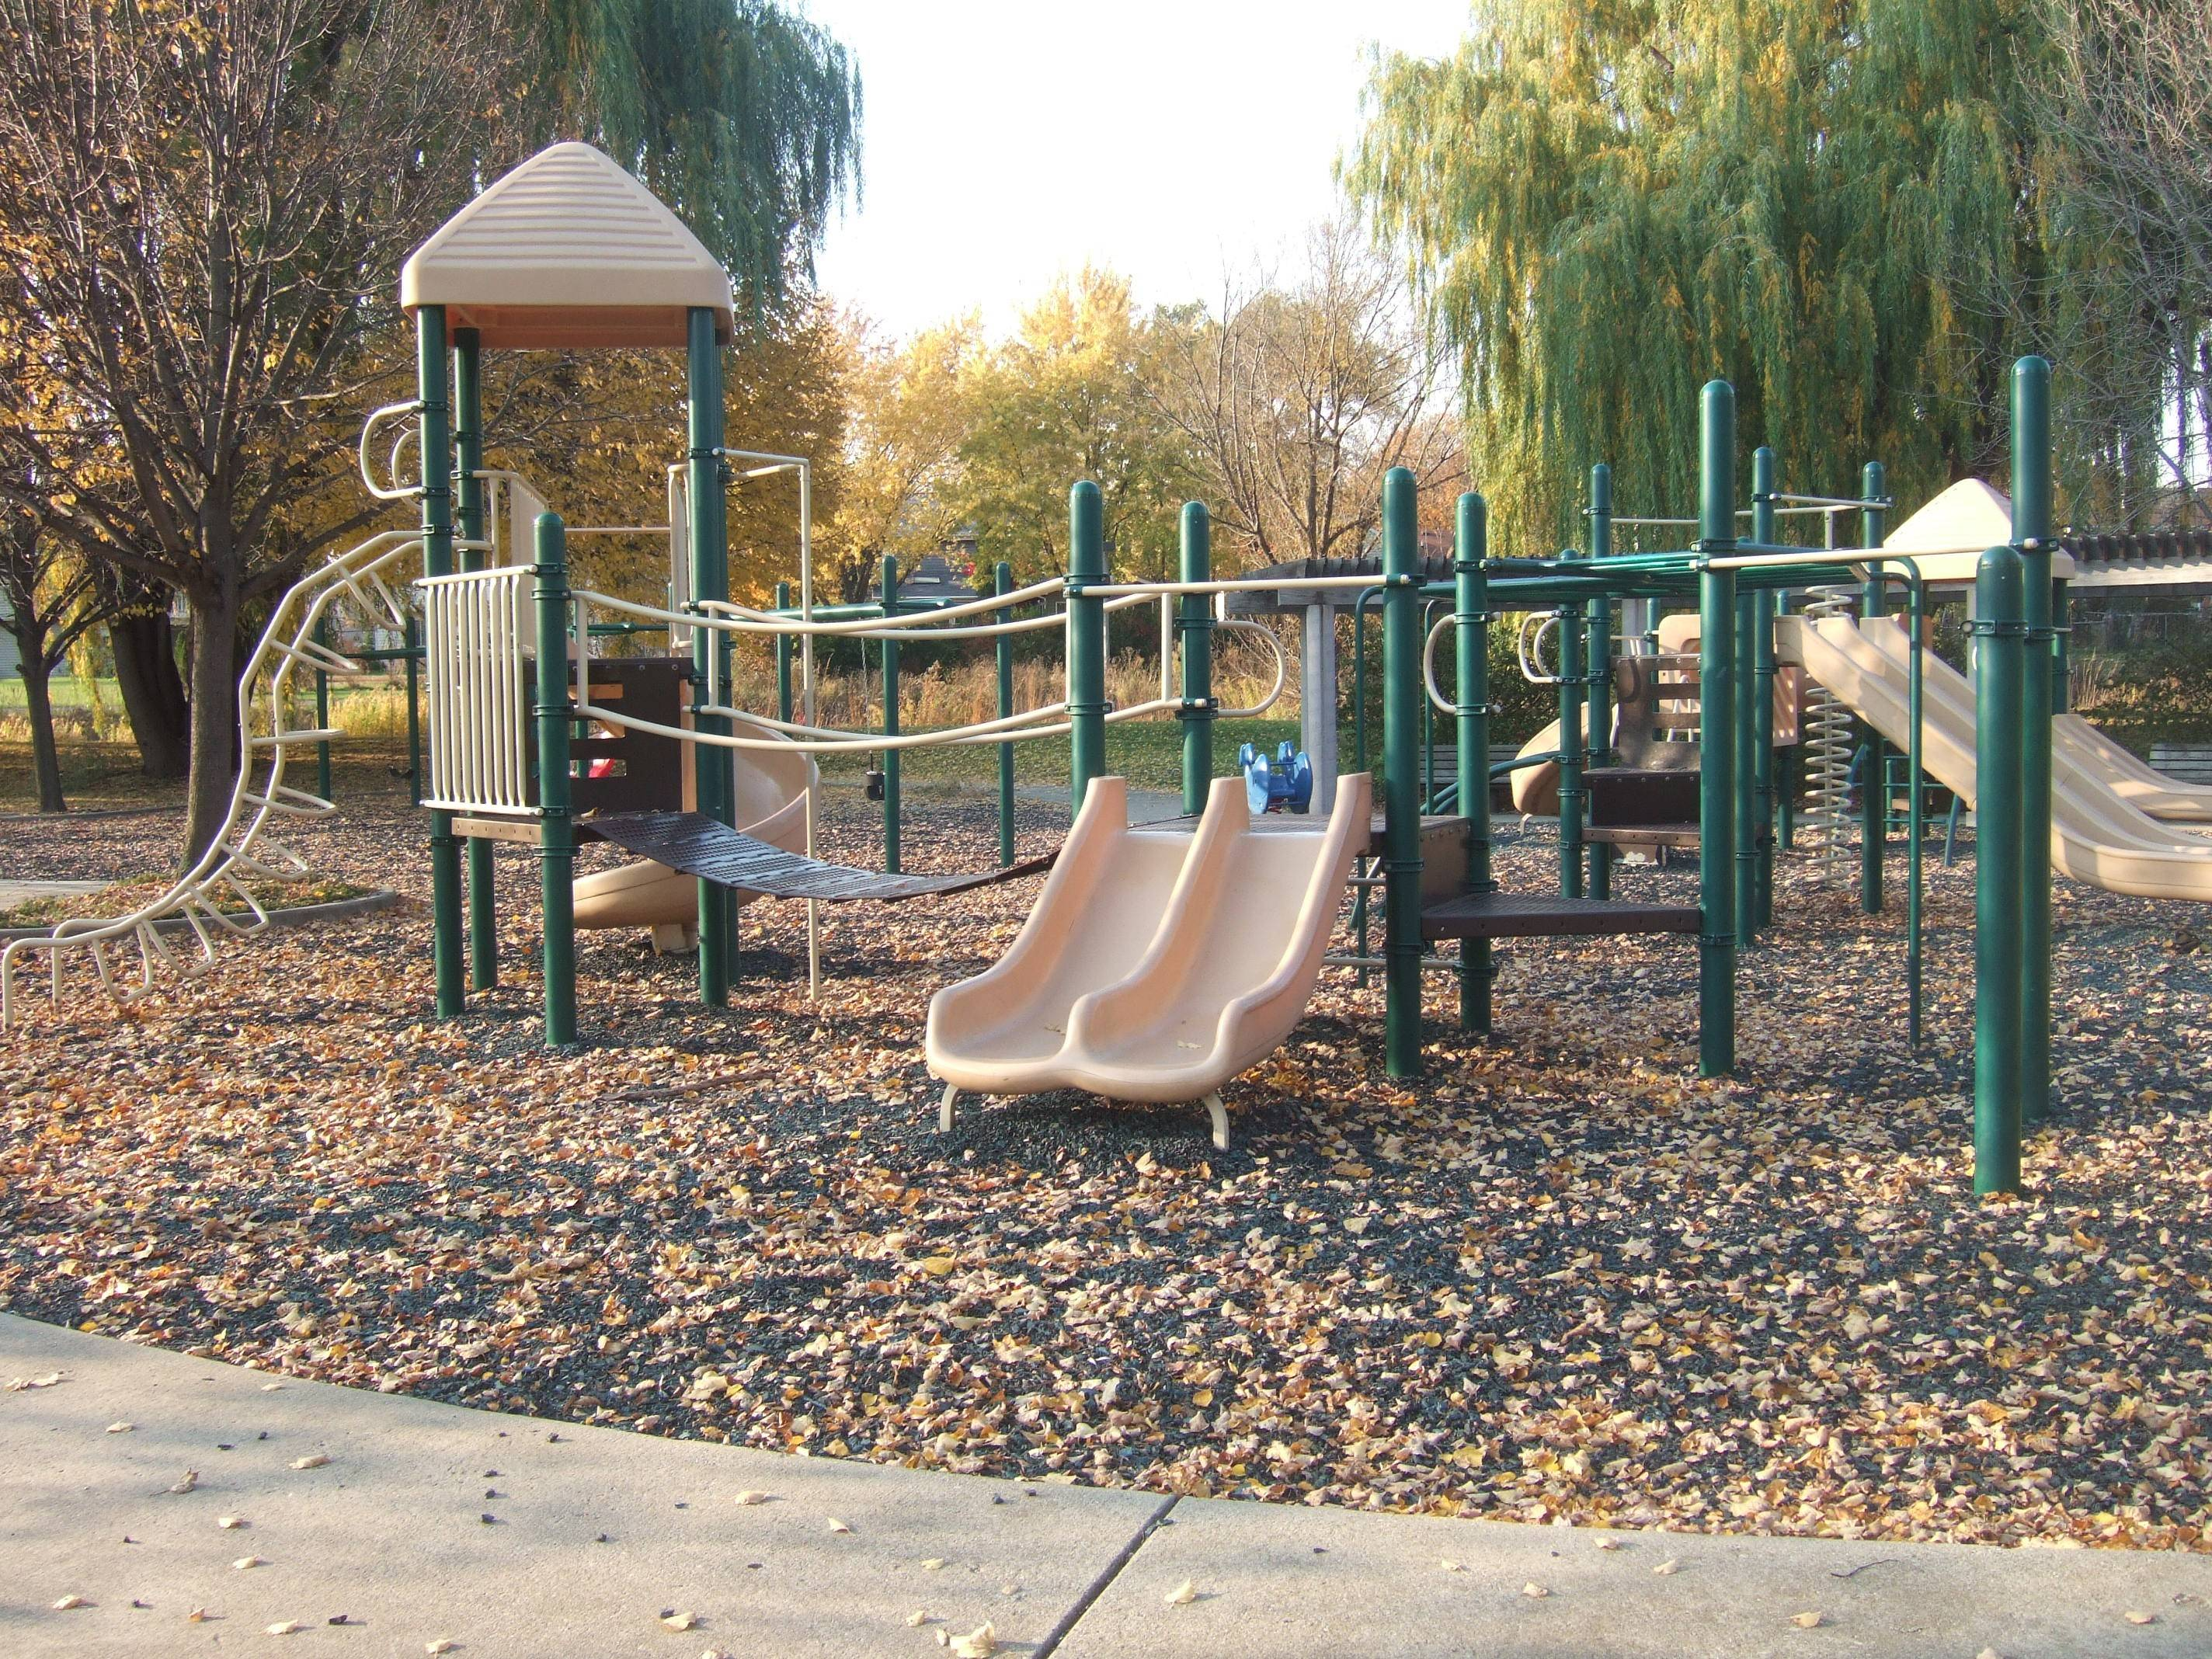 New playground equipment will be installed at Stone Fence Farm Park in Vernon Hills.